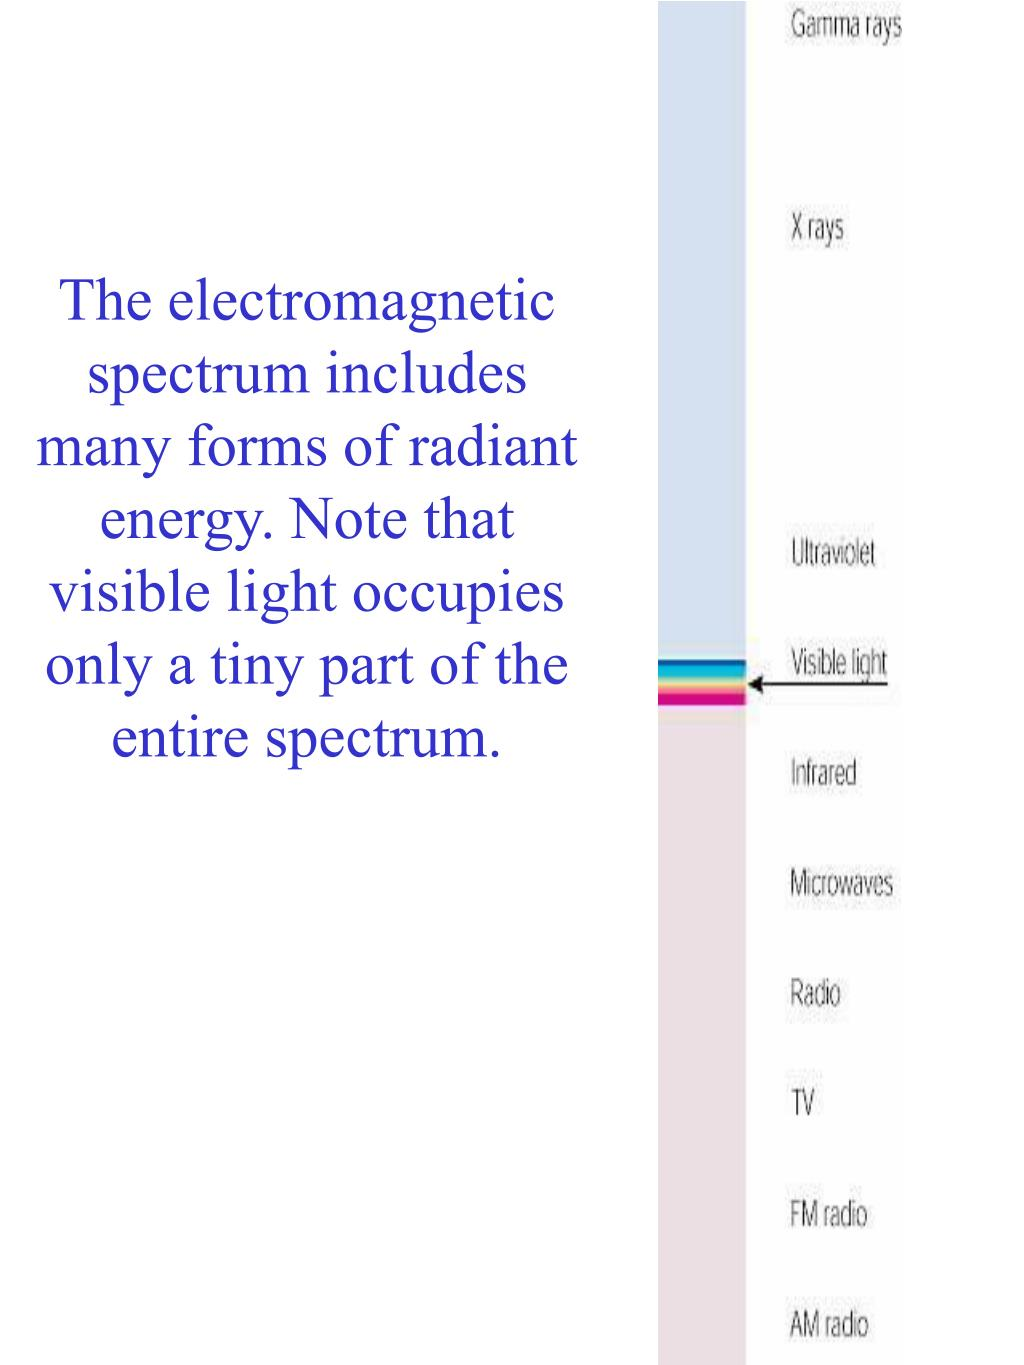 The electromagnetic spectrum includes many forms of radiant energy. Note that visible light occupies only a tiny part of the entire spectrum.